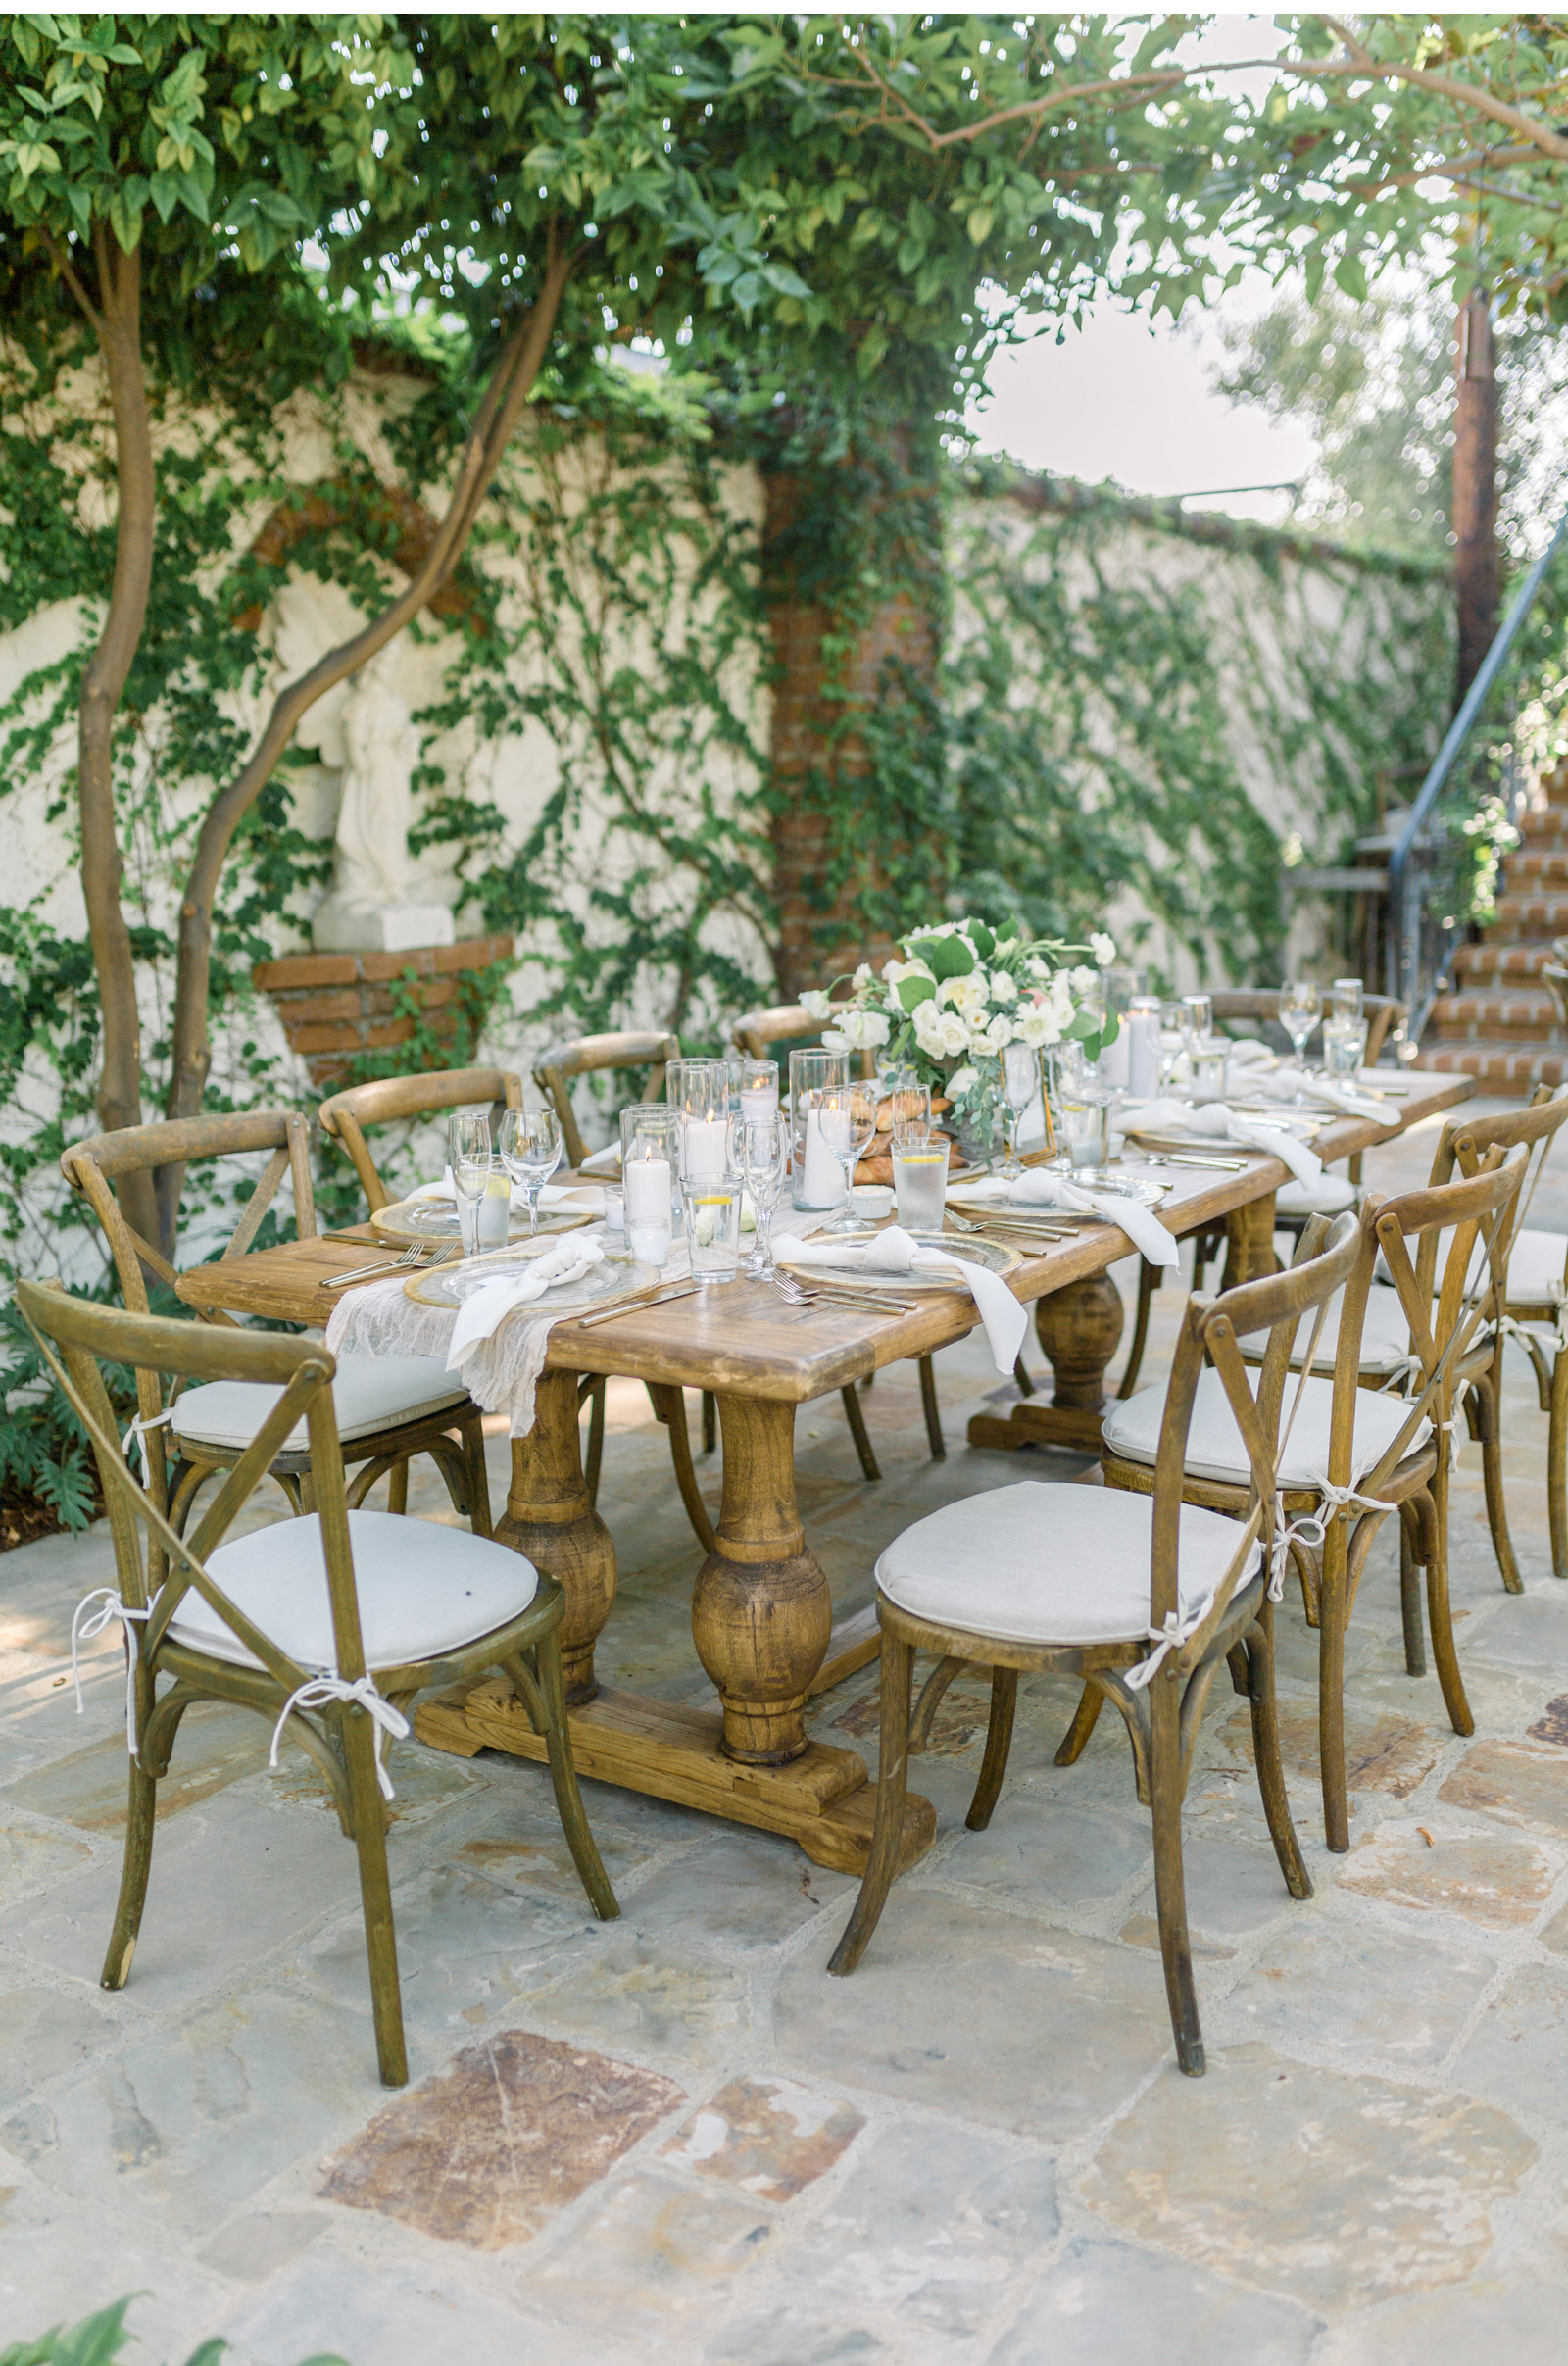 The-Villa-San-Juan-Capistrano-Wedding-Venues-Southern-California-Wedding-Photographer-Natalie-Schutt-Photographer_07.jpg